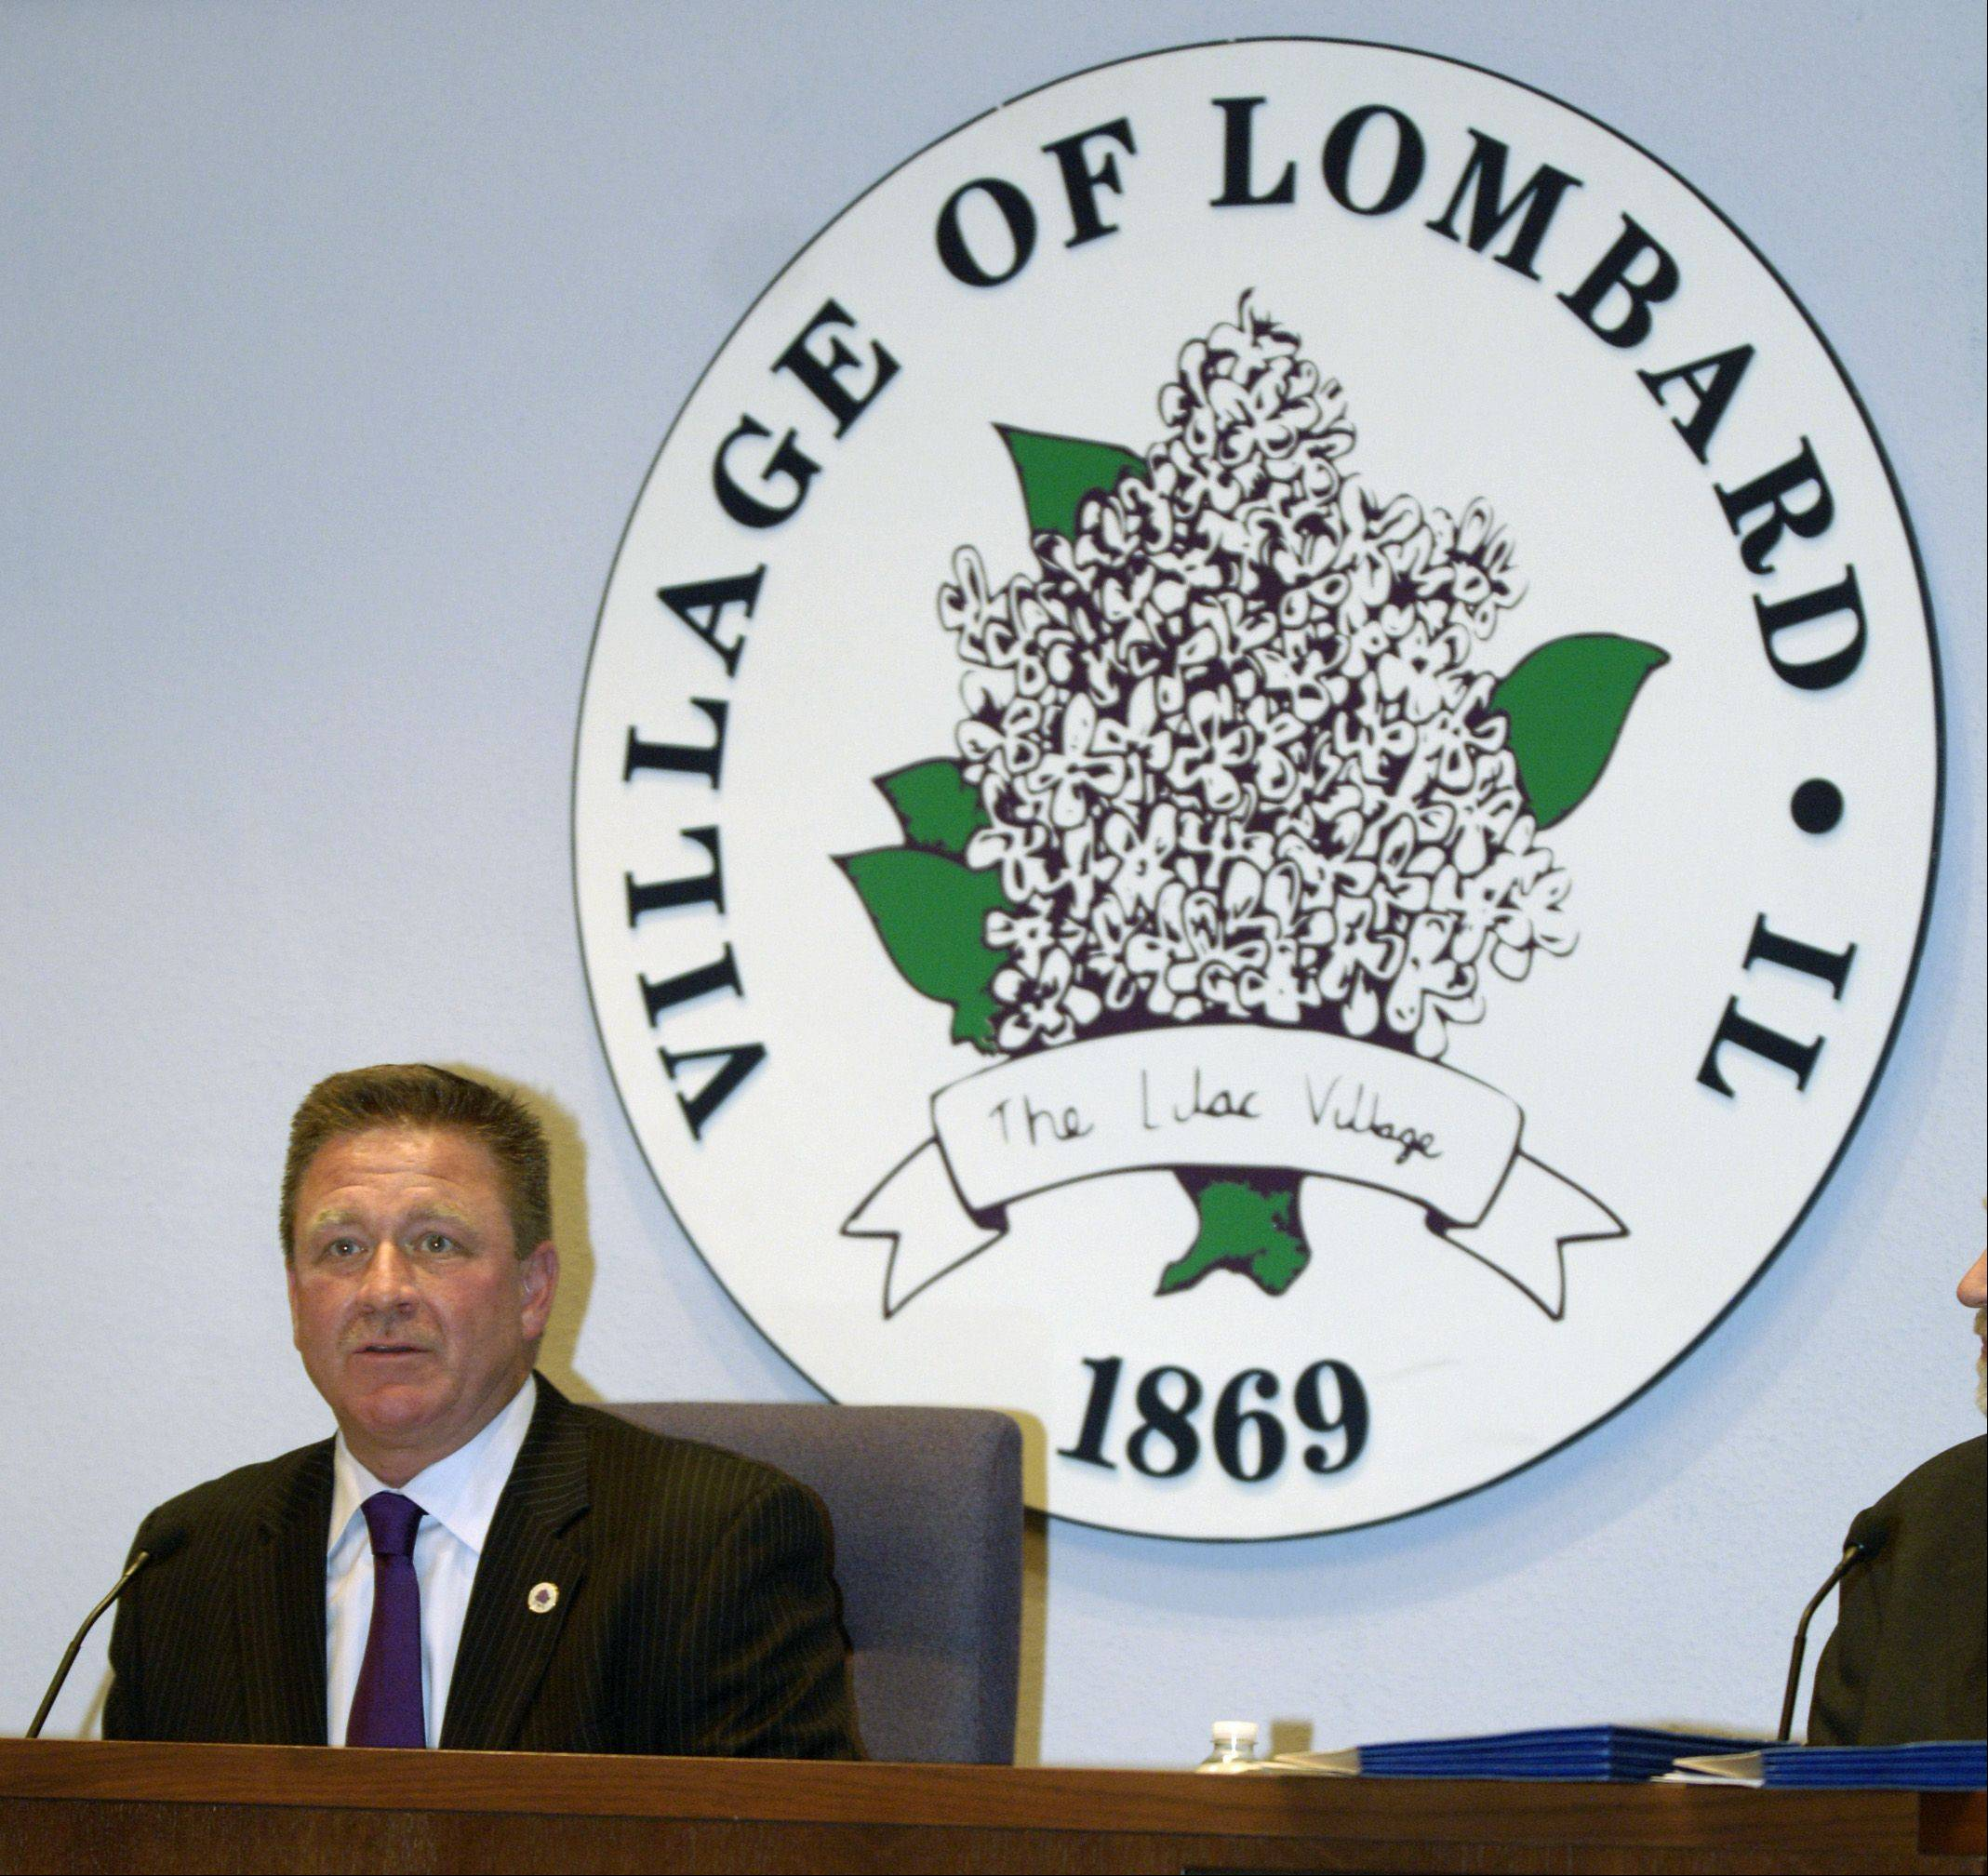 Keith Giagnorio takes his seat as the new Lombard village president during Thursday night's board meeting.